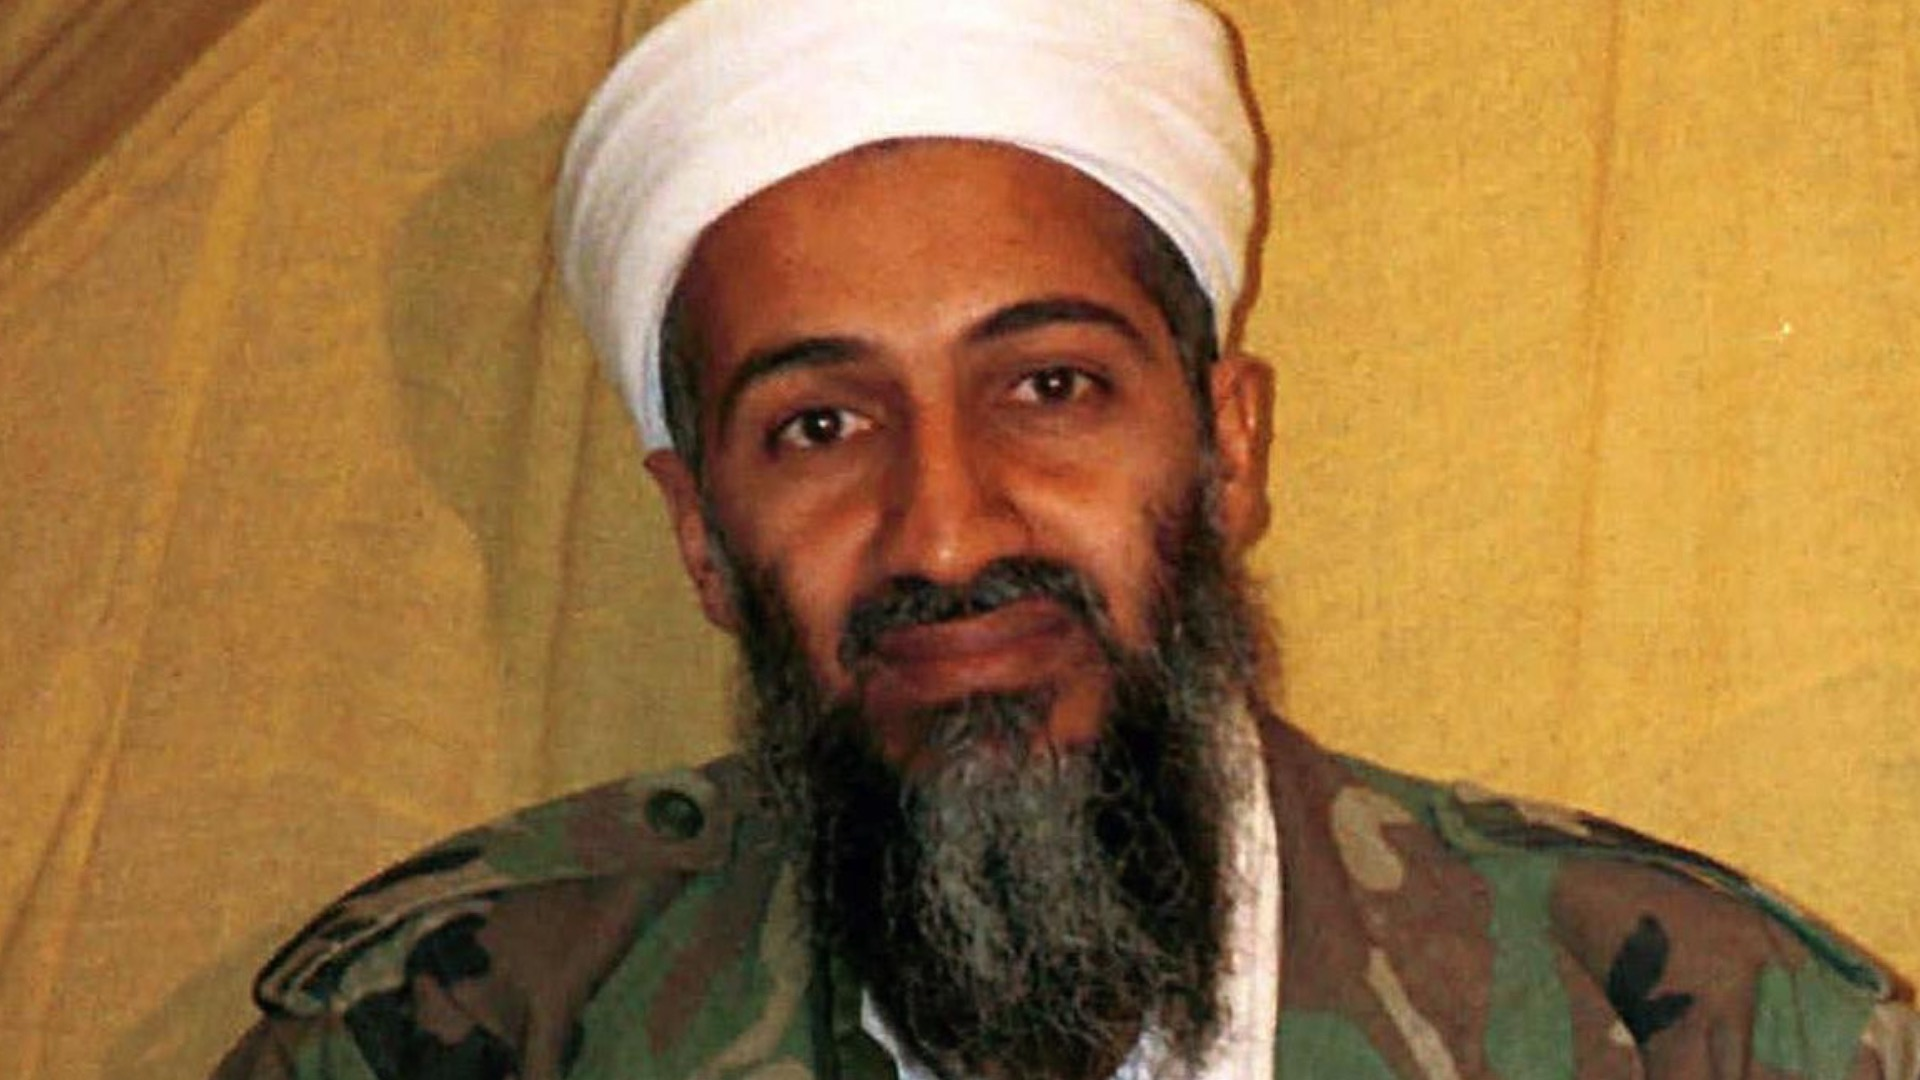 Osama bin Laden warned against almost every aspect of Islamic State playbook